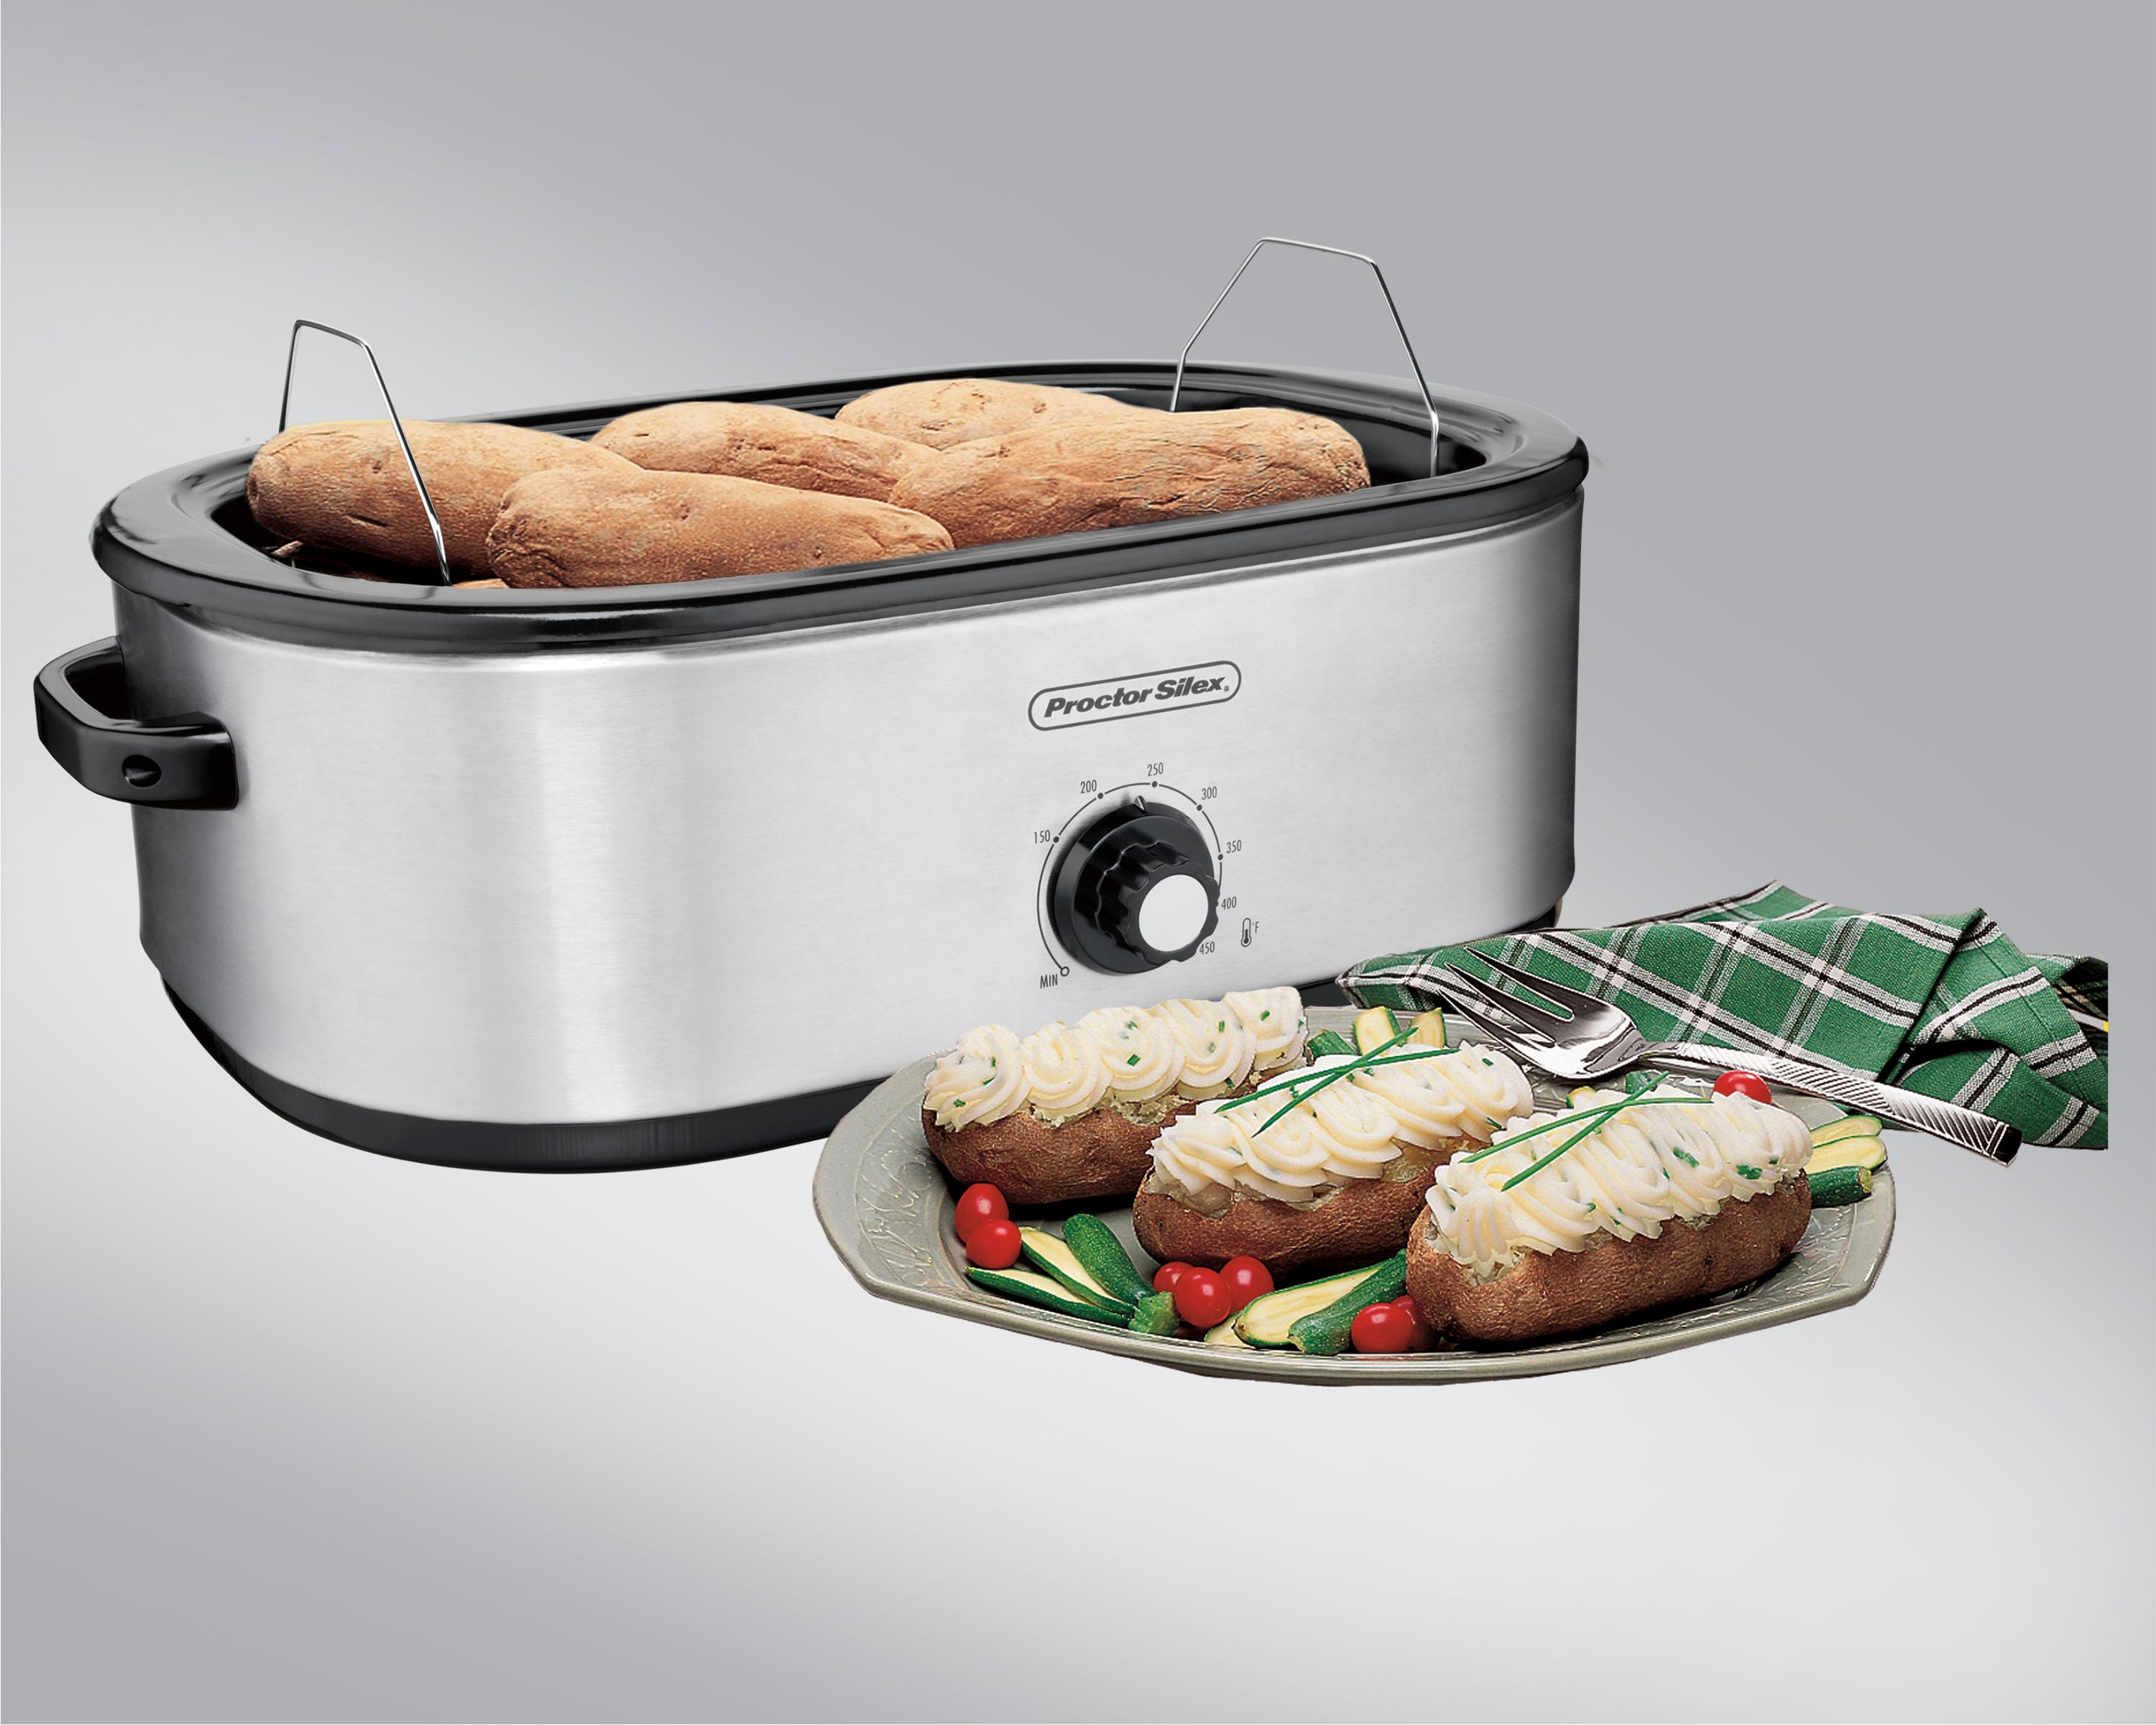 roaster turkey electric large roasters ovens slow cooker